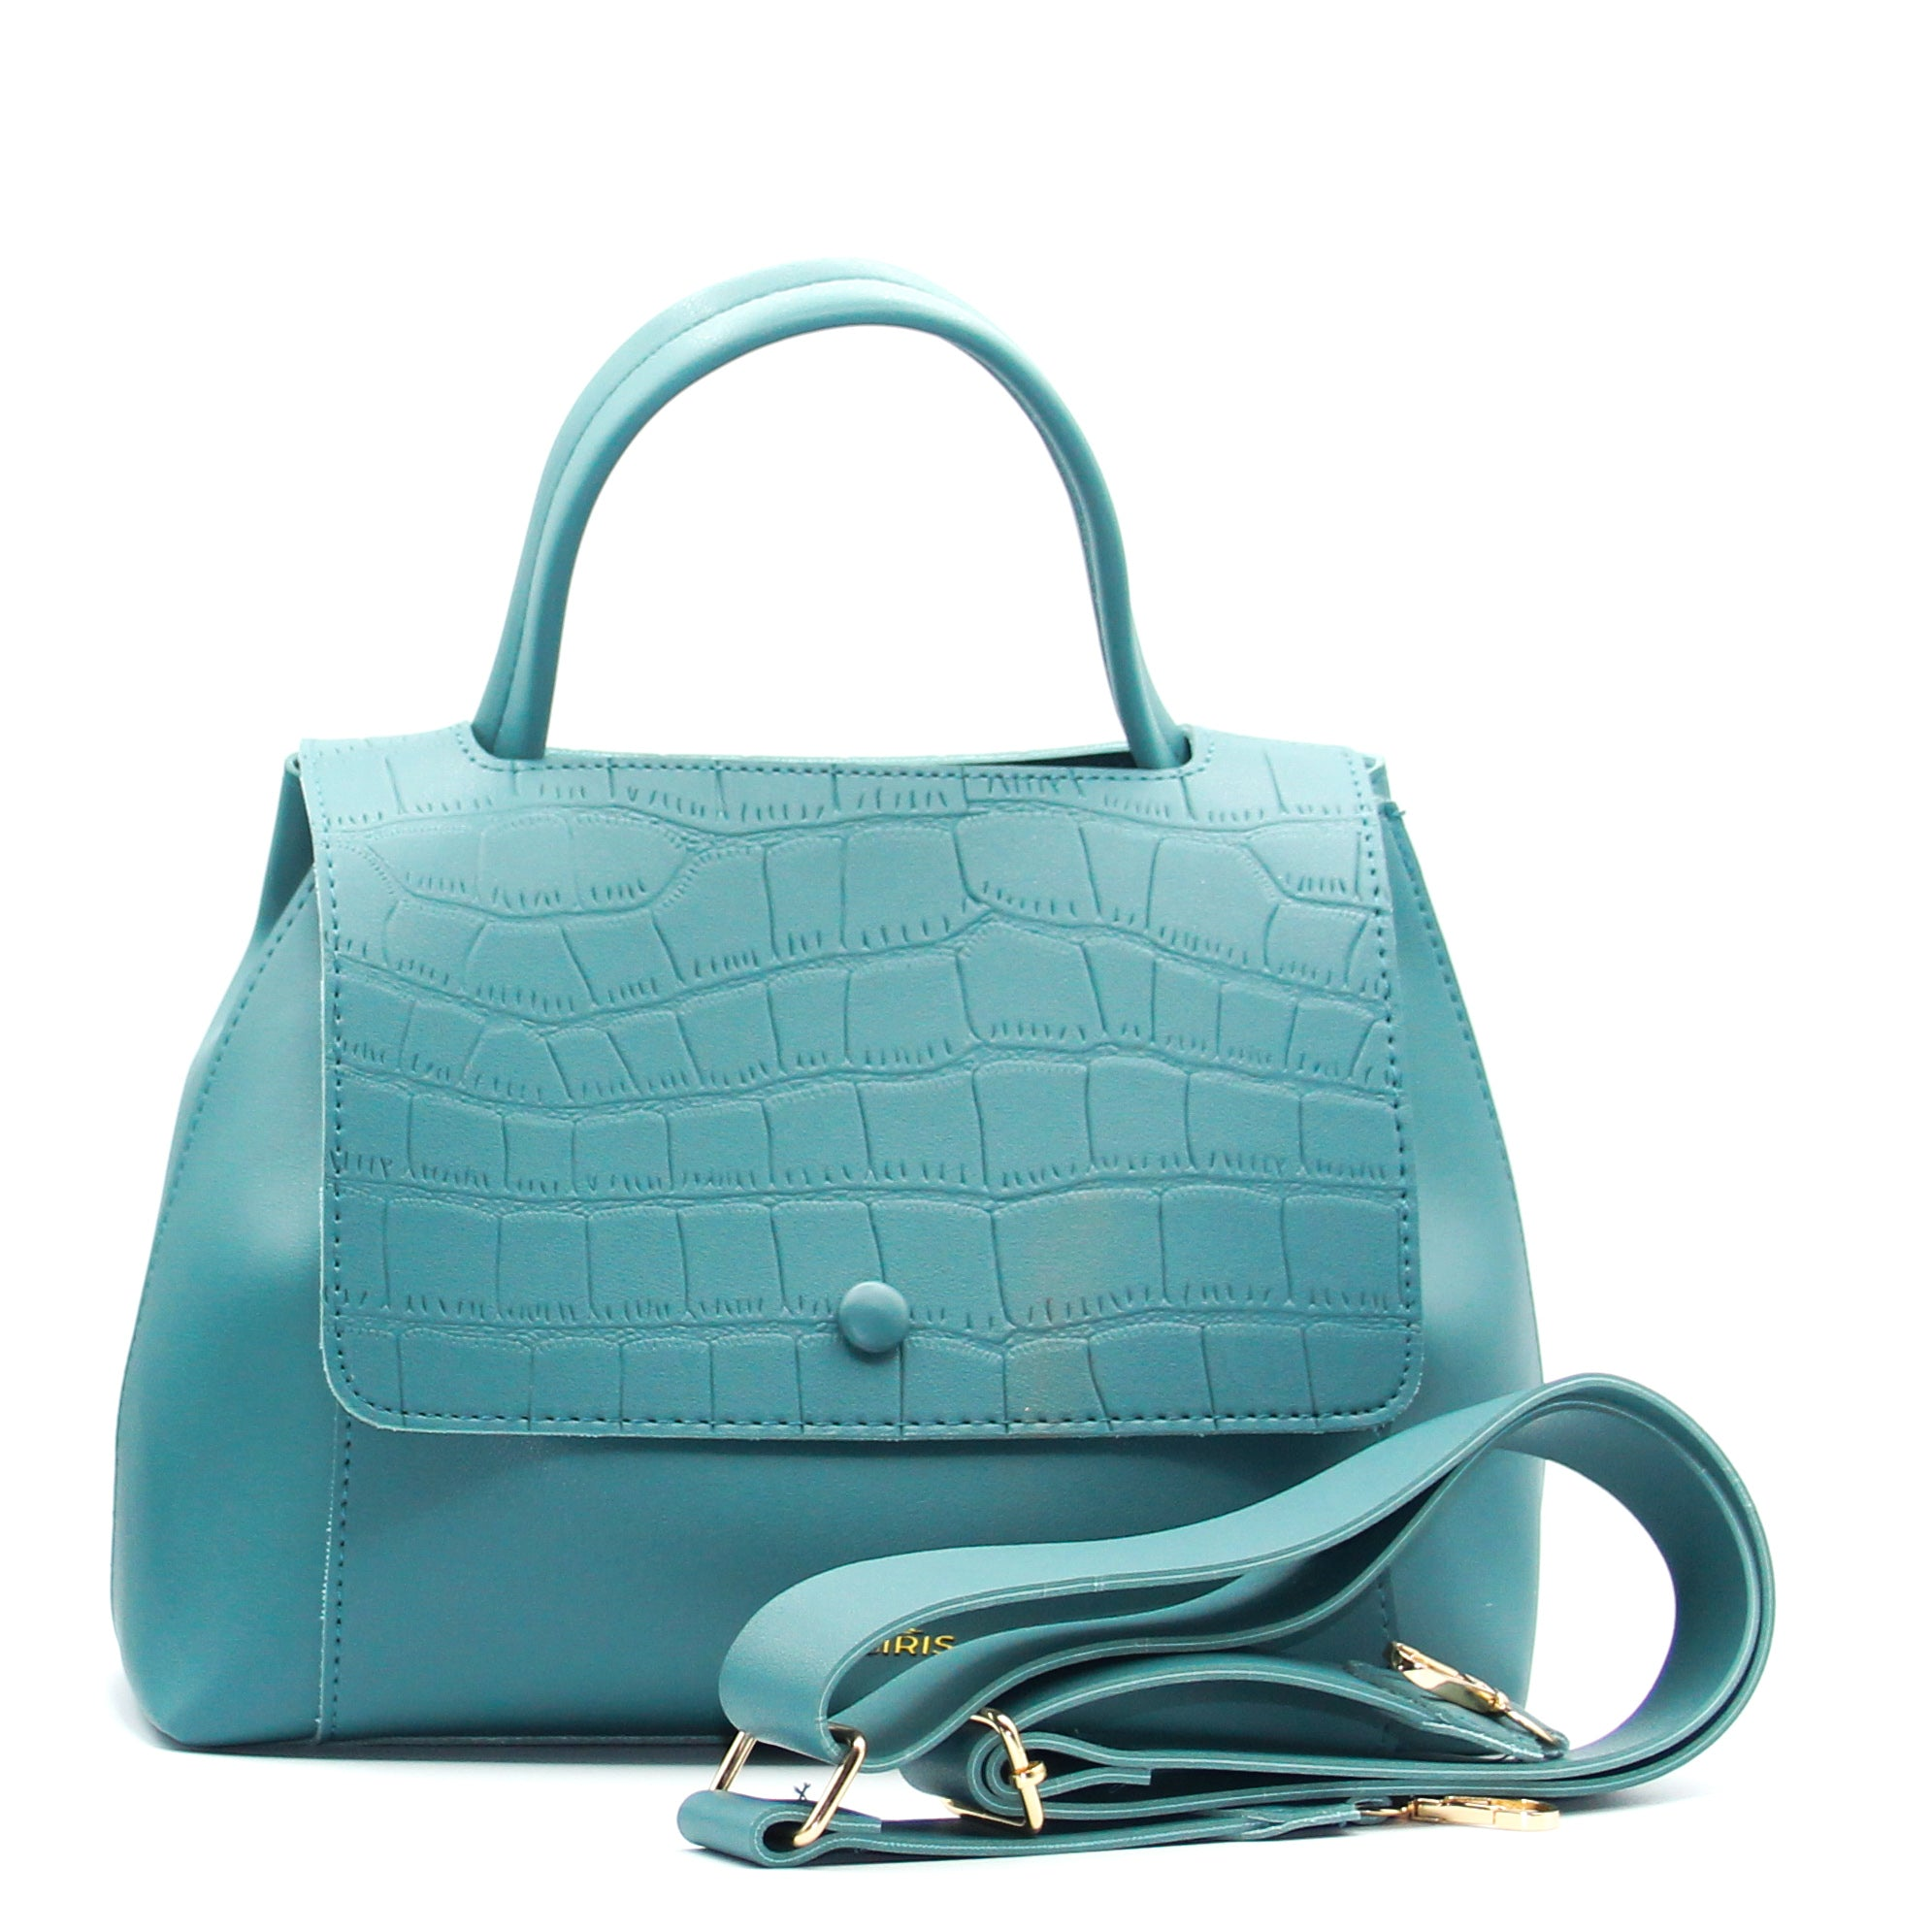 Miss Sophia - Vegan Leather Bag